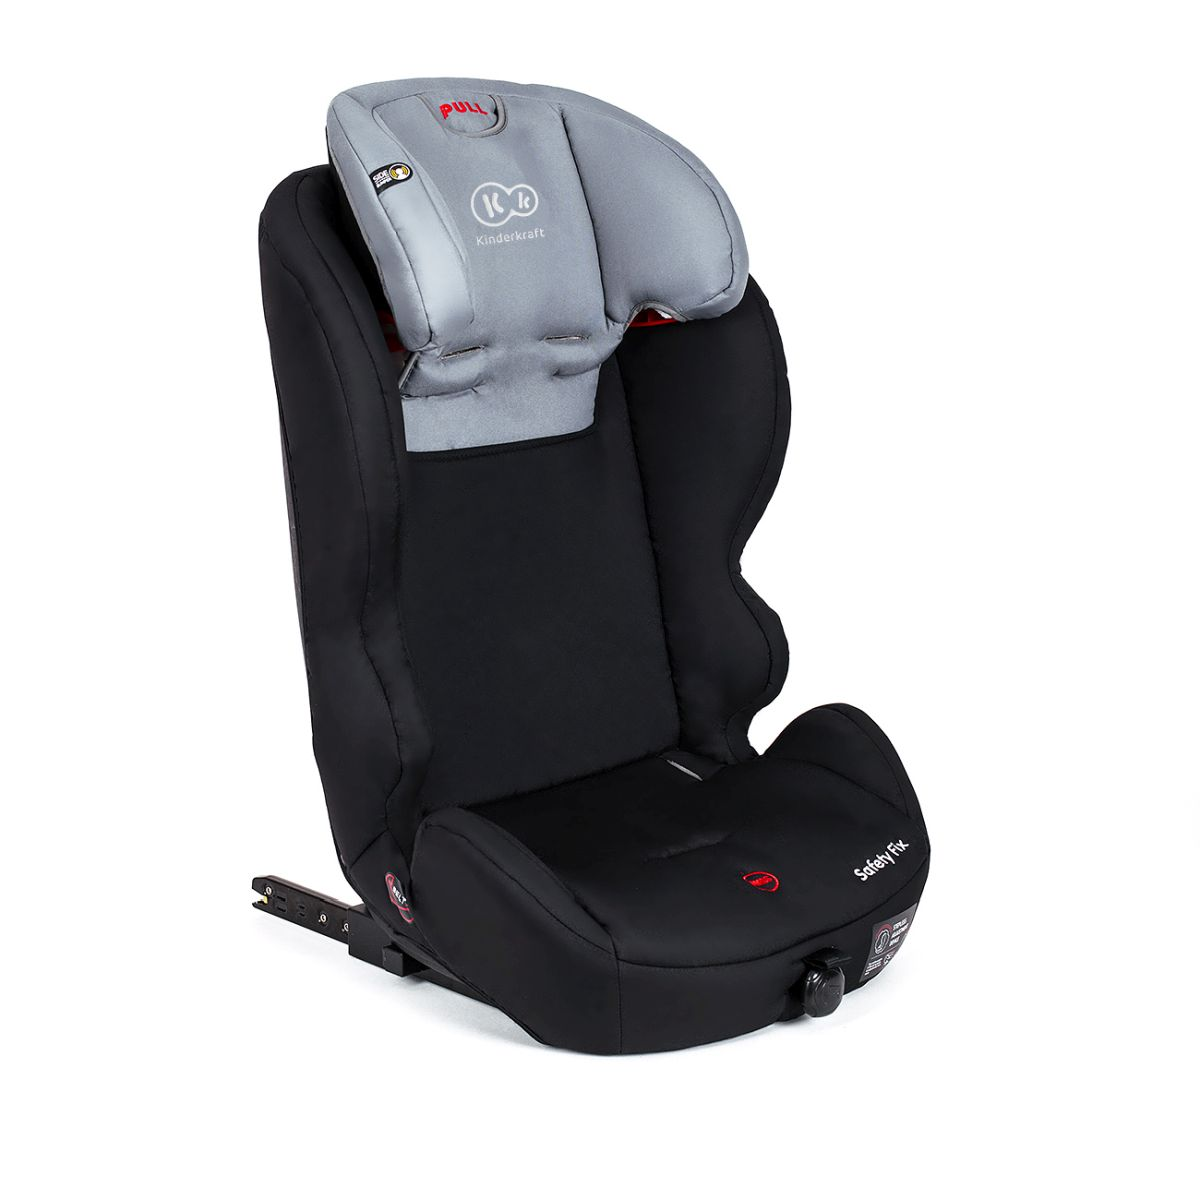 isofix kinderkraft safetyfix car seat child car seat 9 to. Black Bedroom Furniture Sets. Home Design Ideas